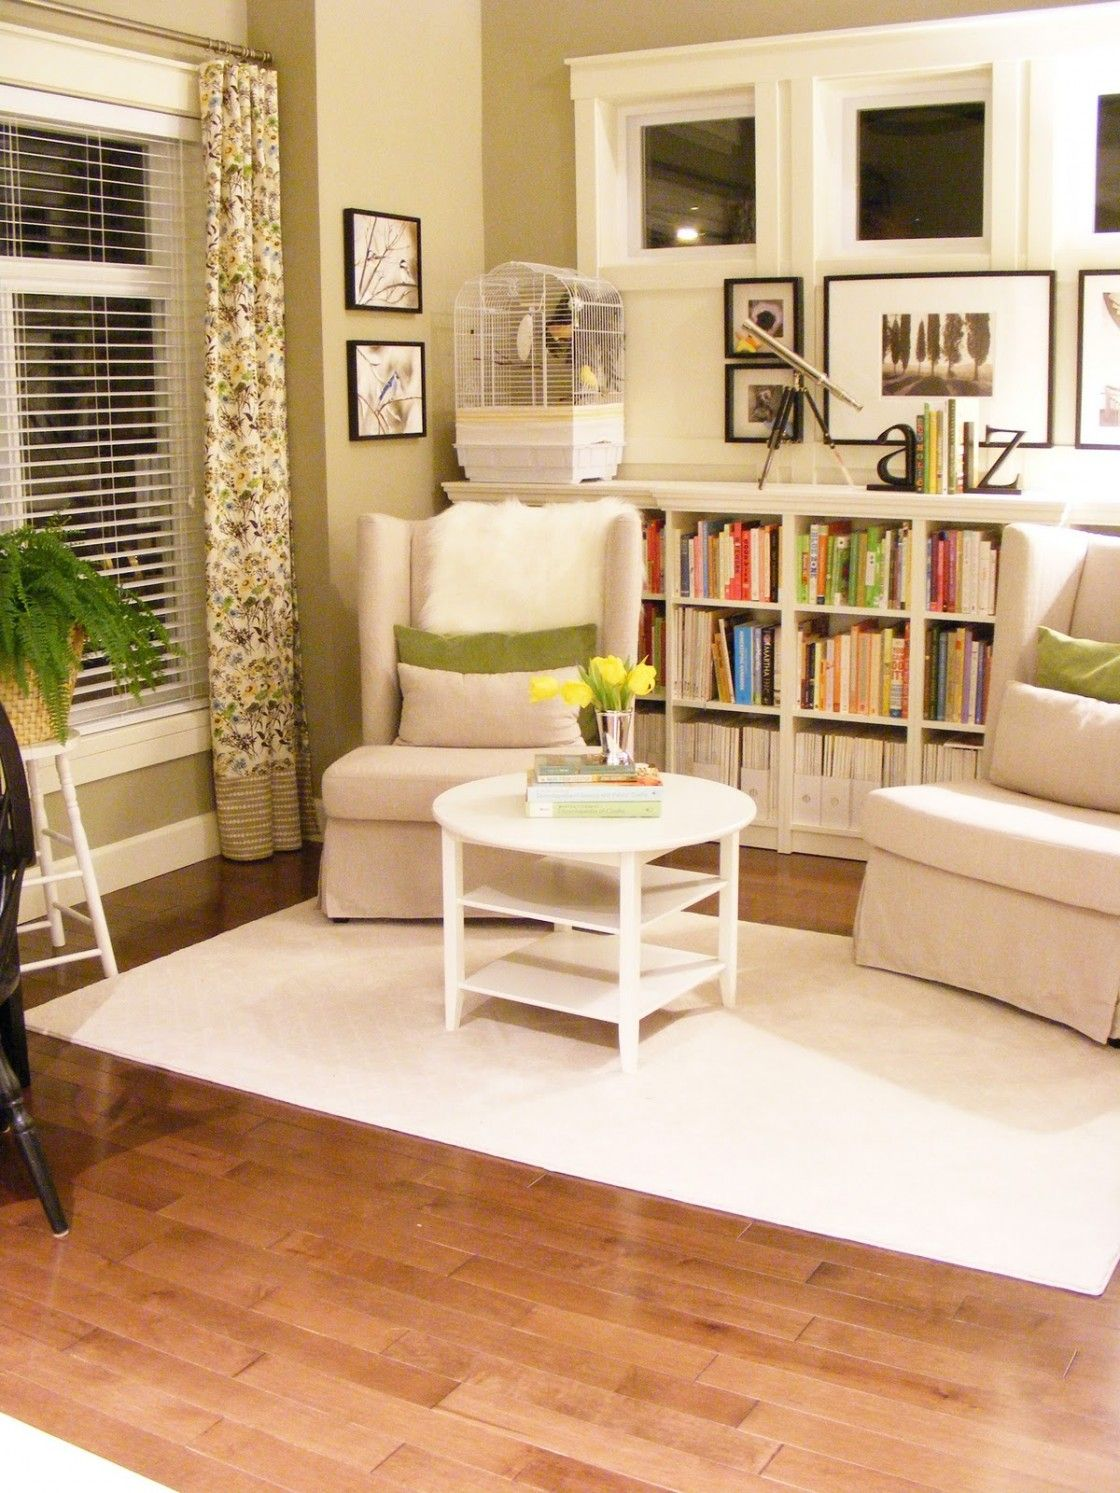 Small Home Library Design With Beautiful Pinch Pleat Florals Curtains And Mini White Finish Wooden Storage